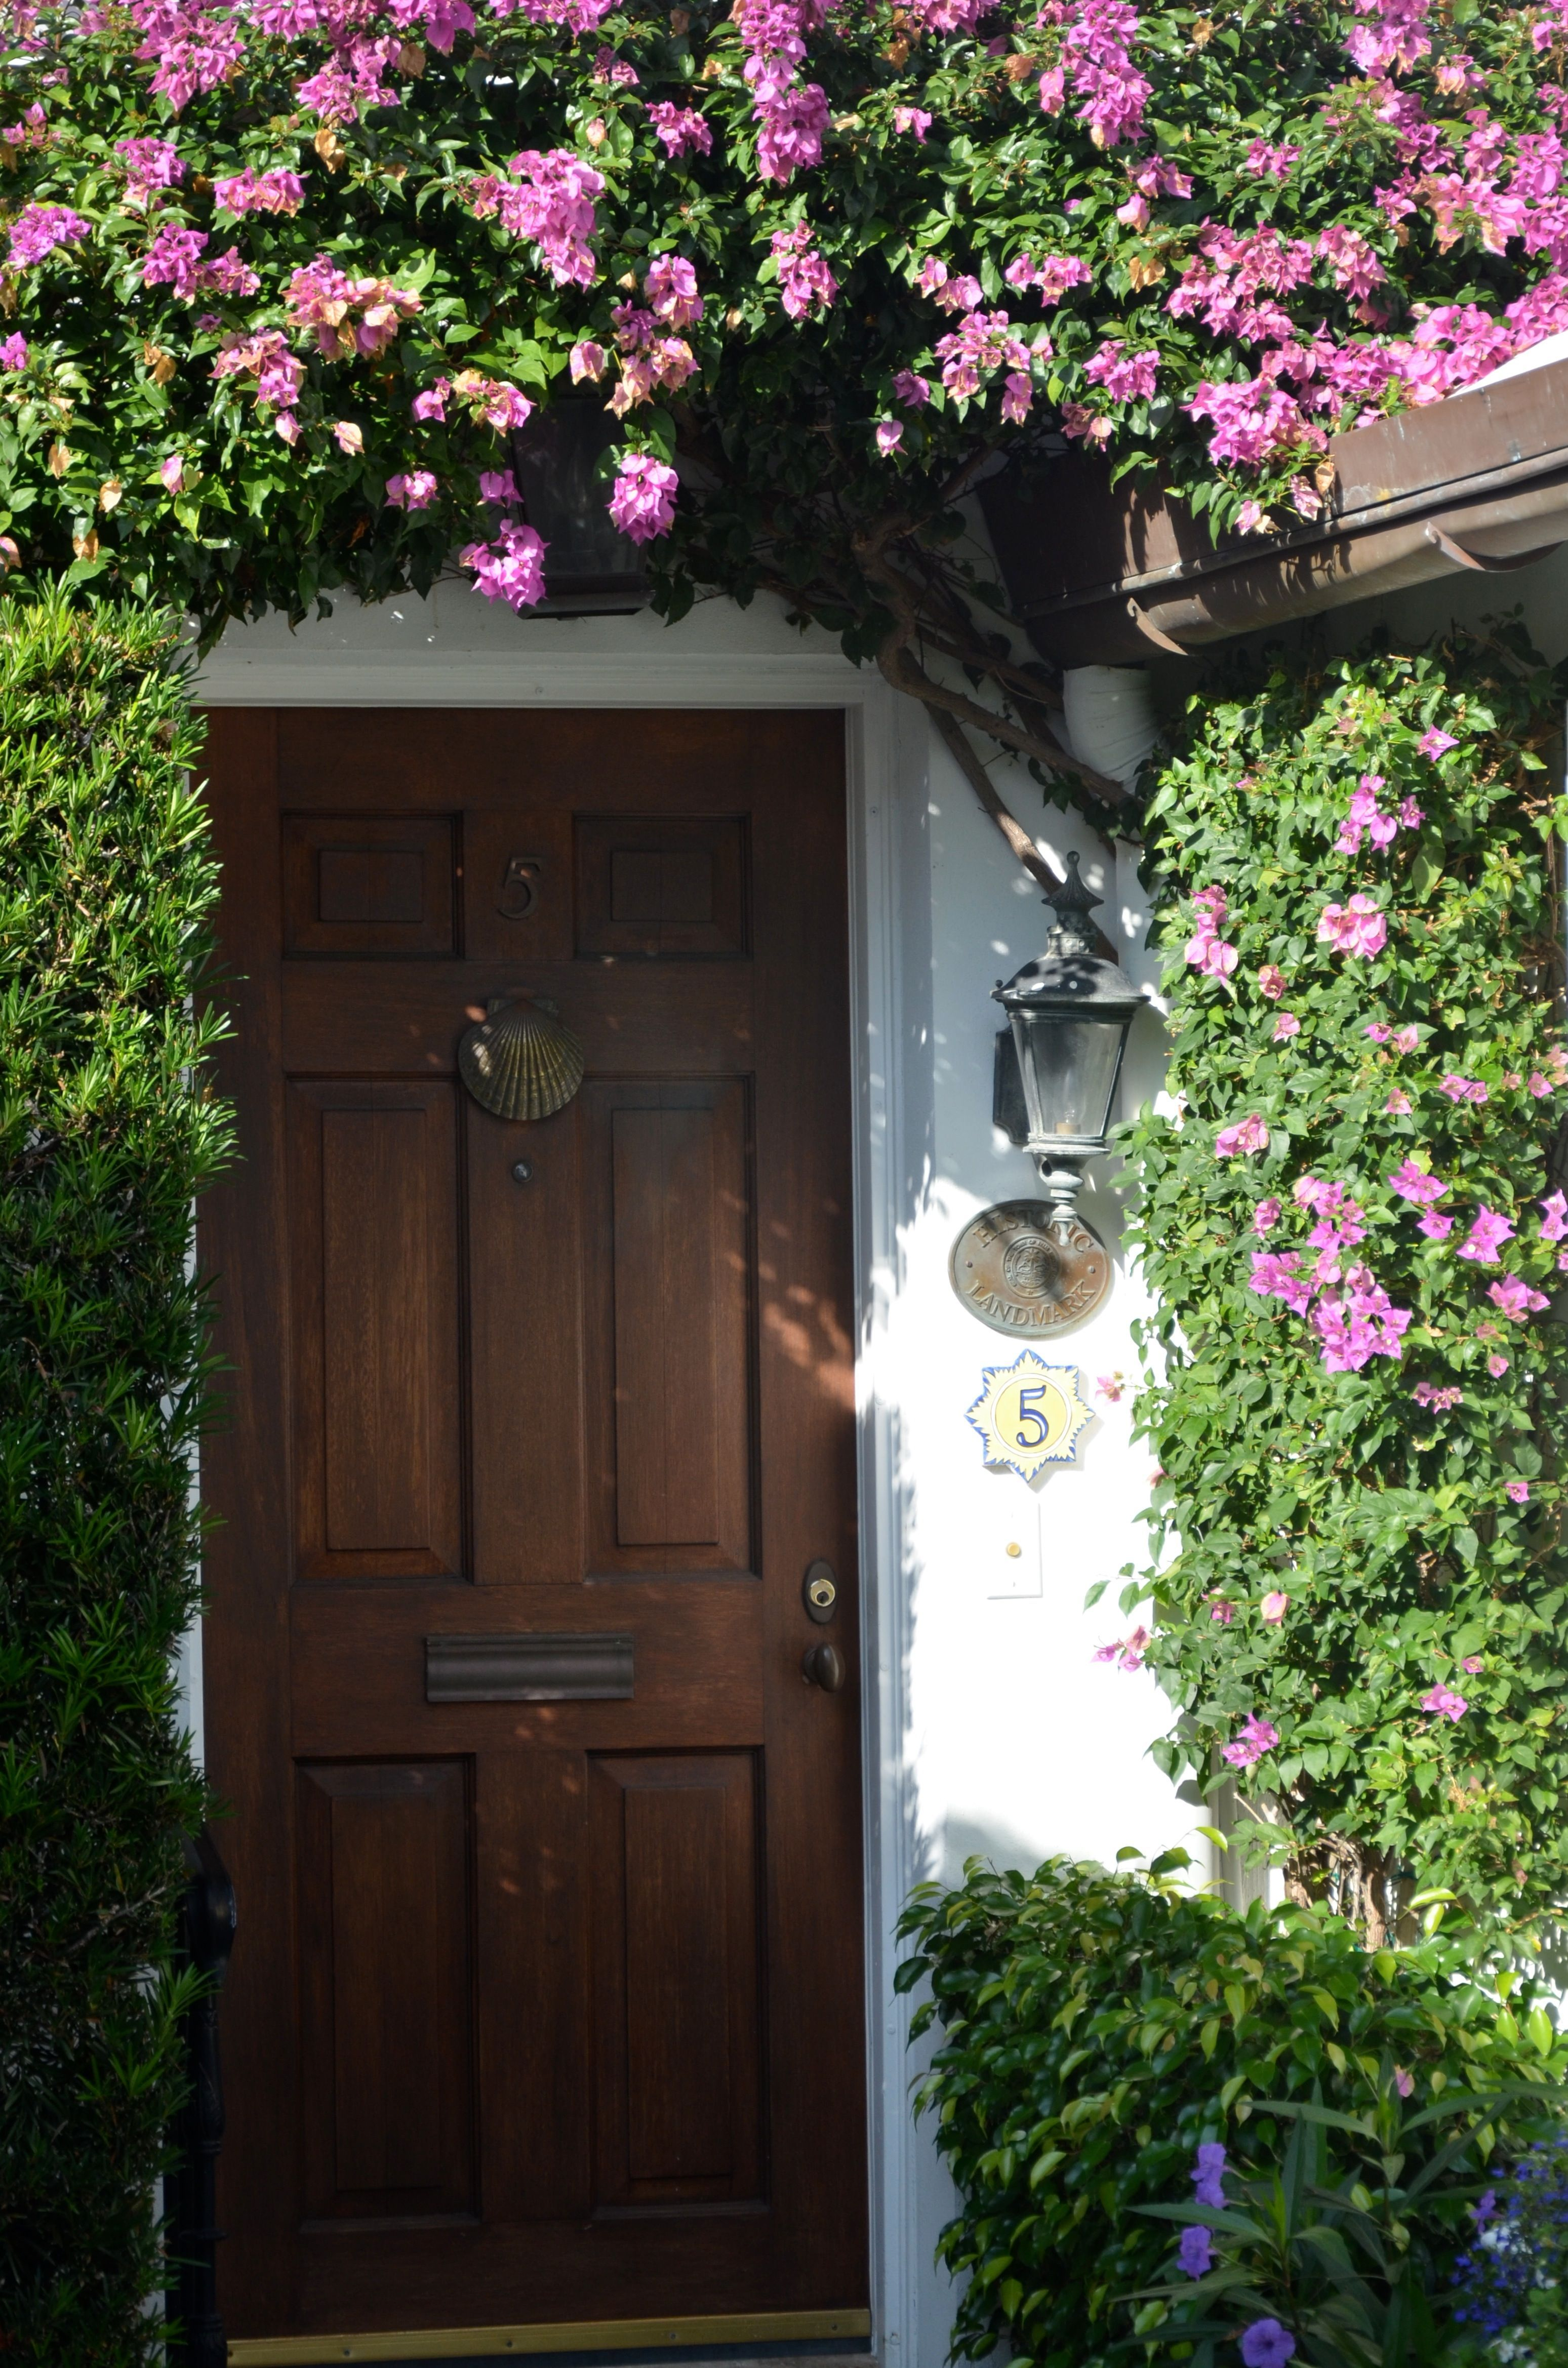 Bougainvillea over Doorway - Major Alley - Palm Beach